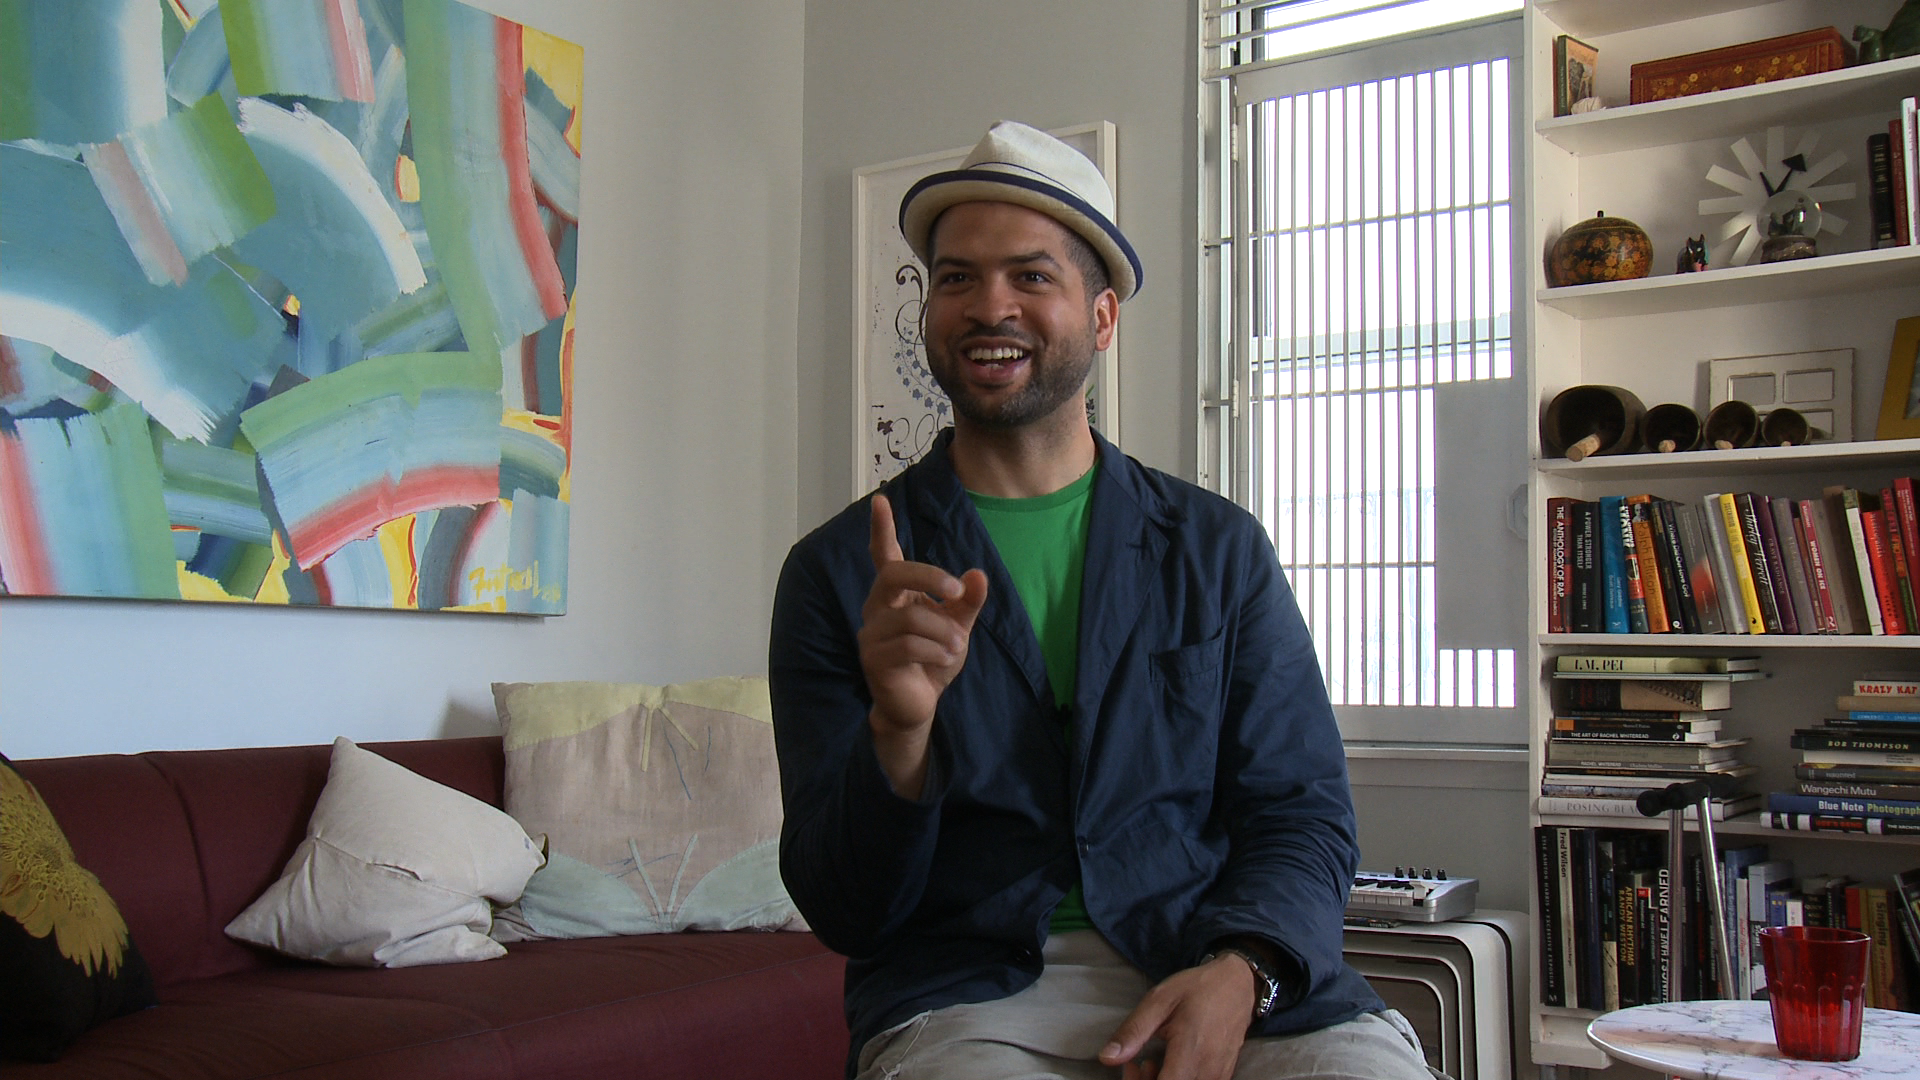 Jason_Moran_3 ungraded.png